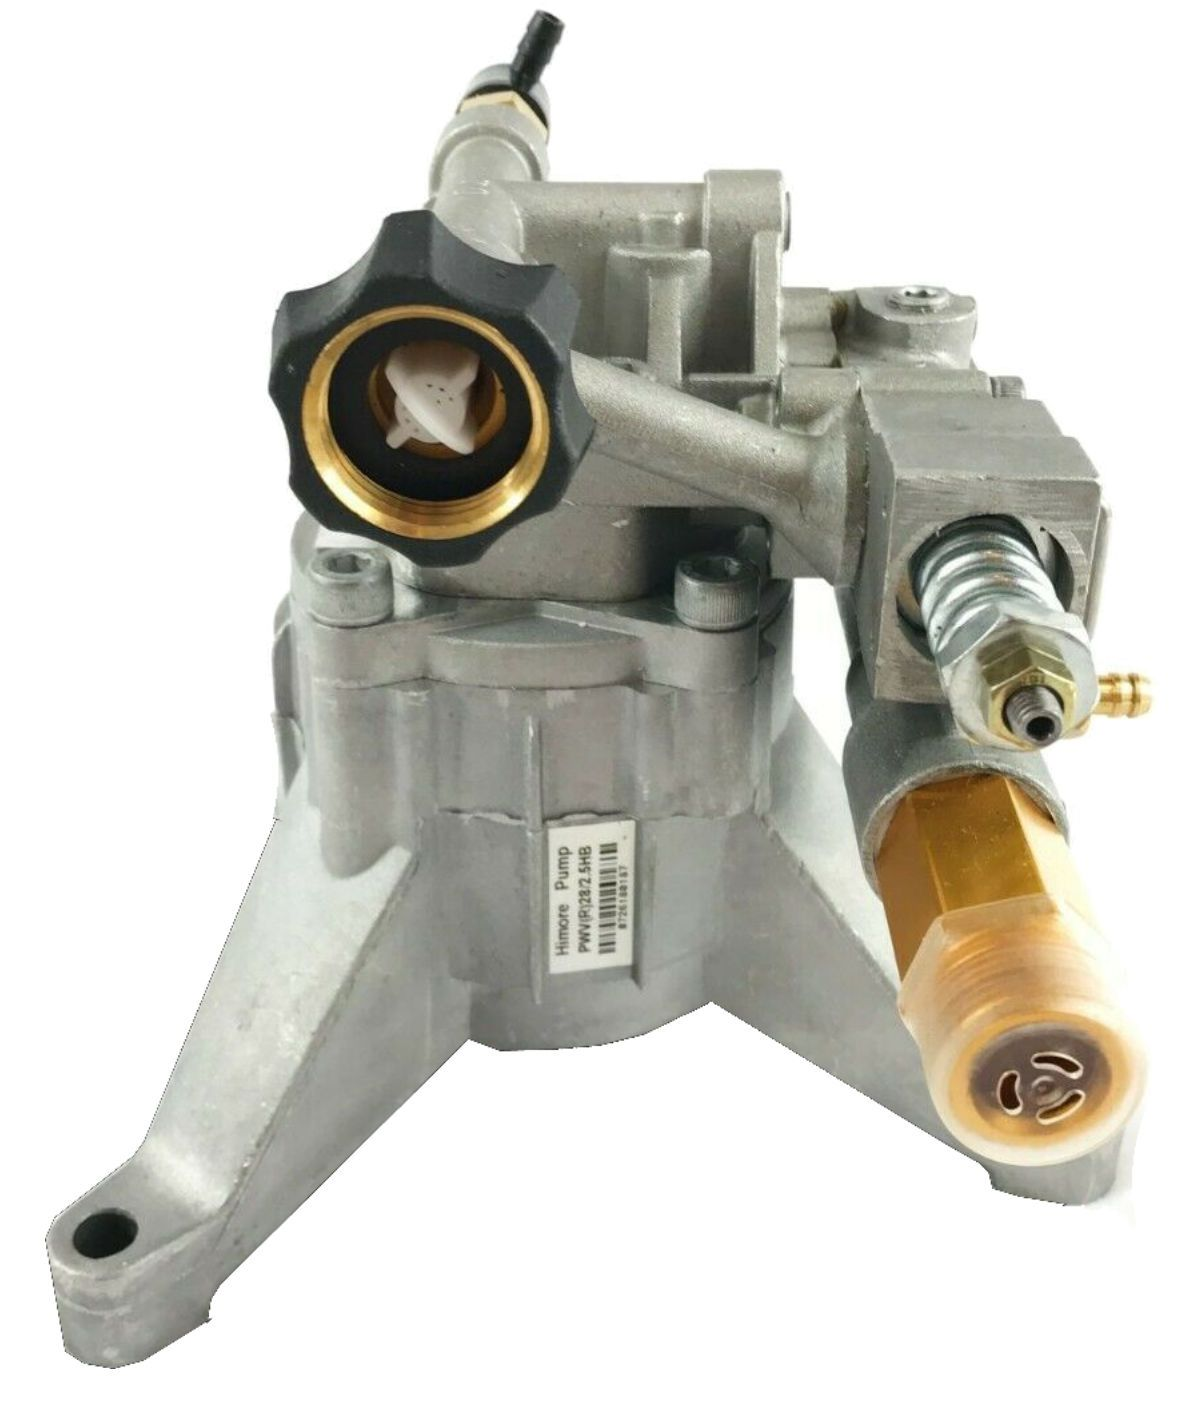 2700 PSI PRESSURE WASHER WATER PUMP fits Sears Craftsman 580.676630 020323-0 - AE-Power